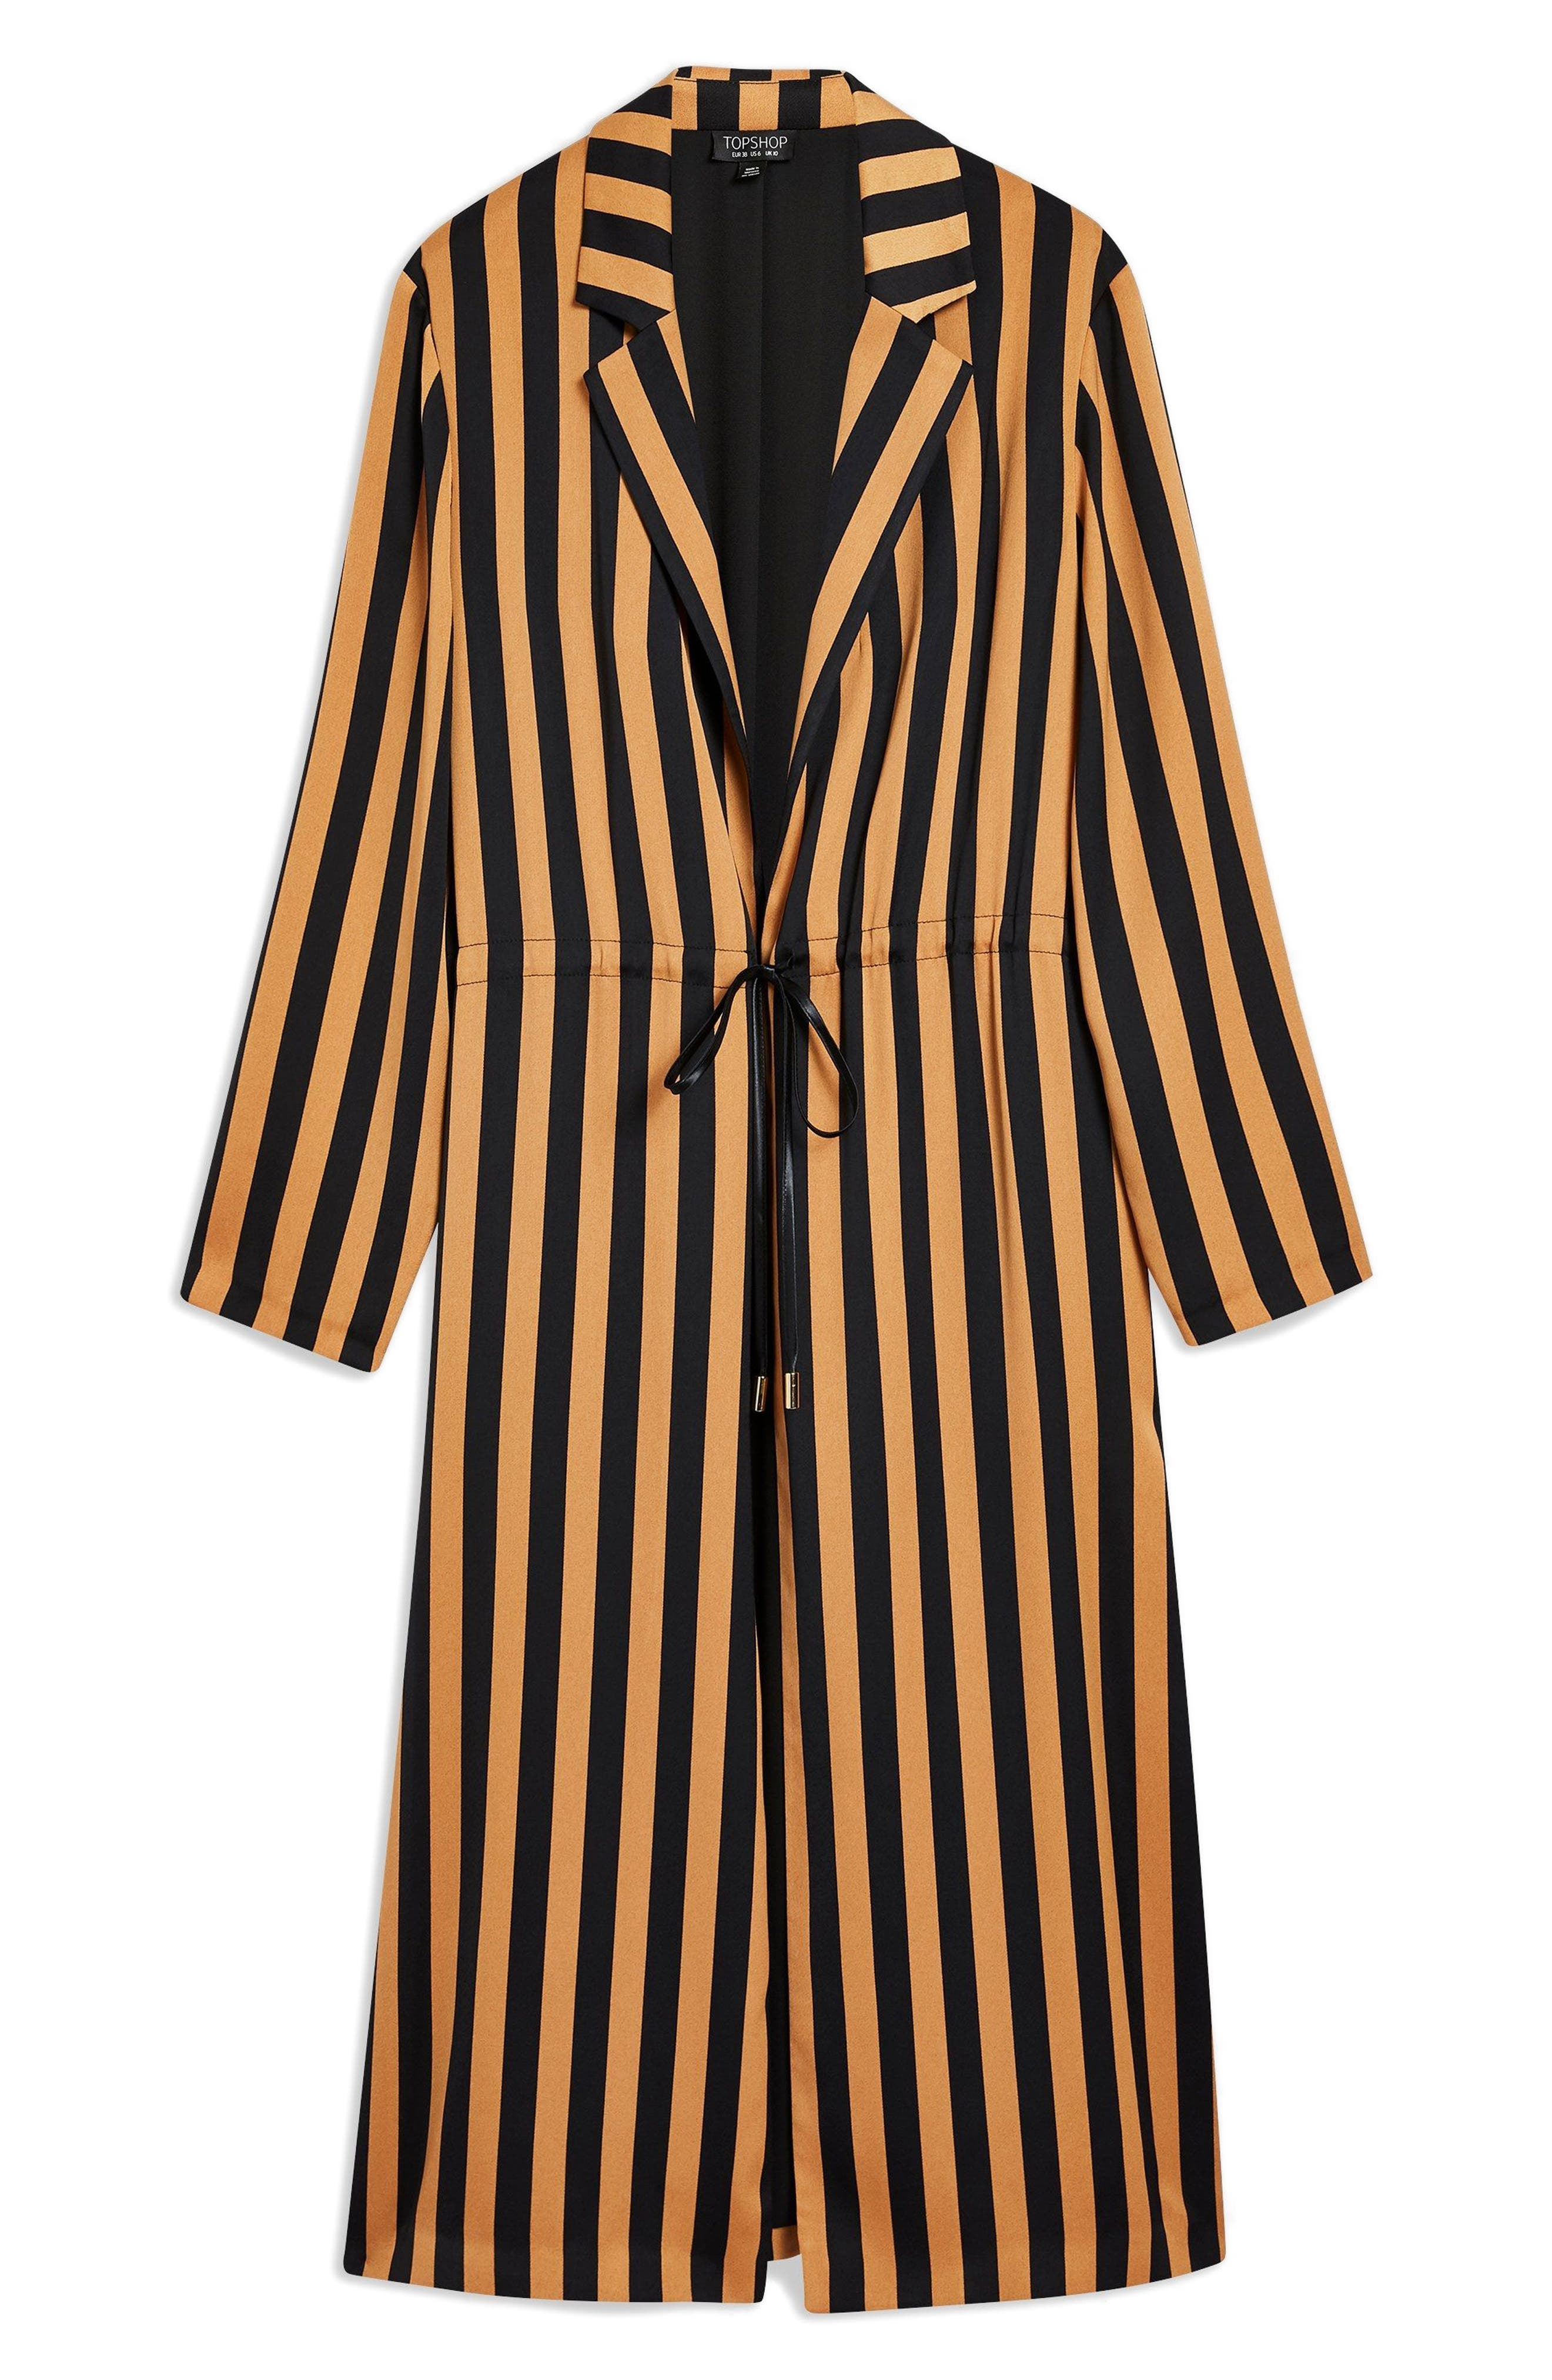 TOPSHOP,                             Stripe Duster Jacket,                             Alternate thumbnail 4, color,                             201